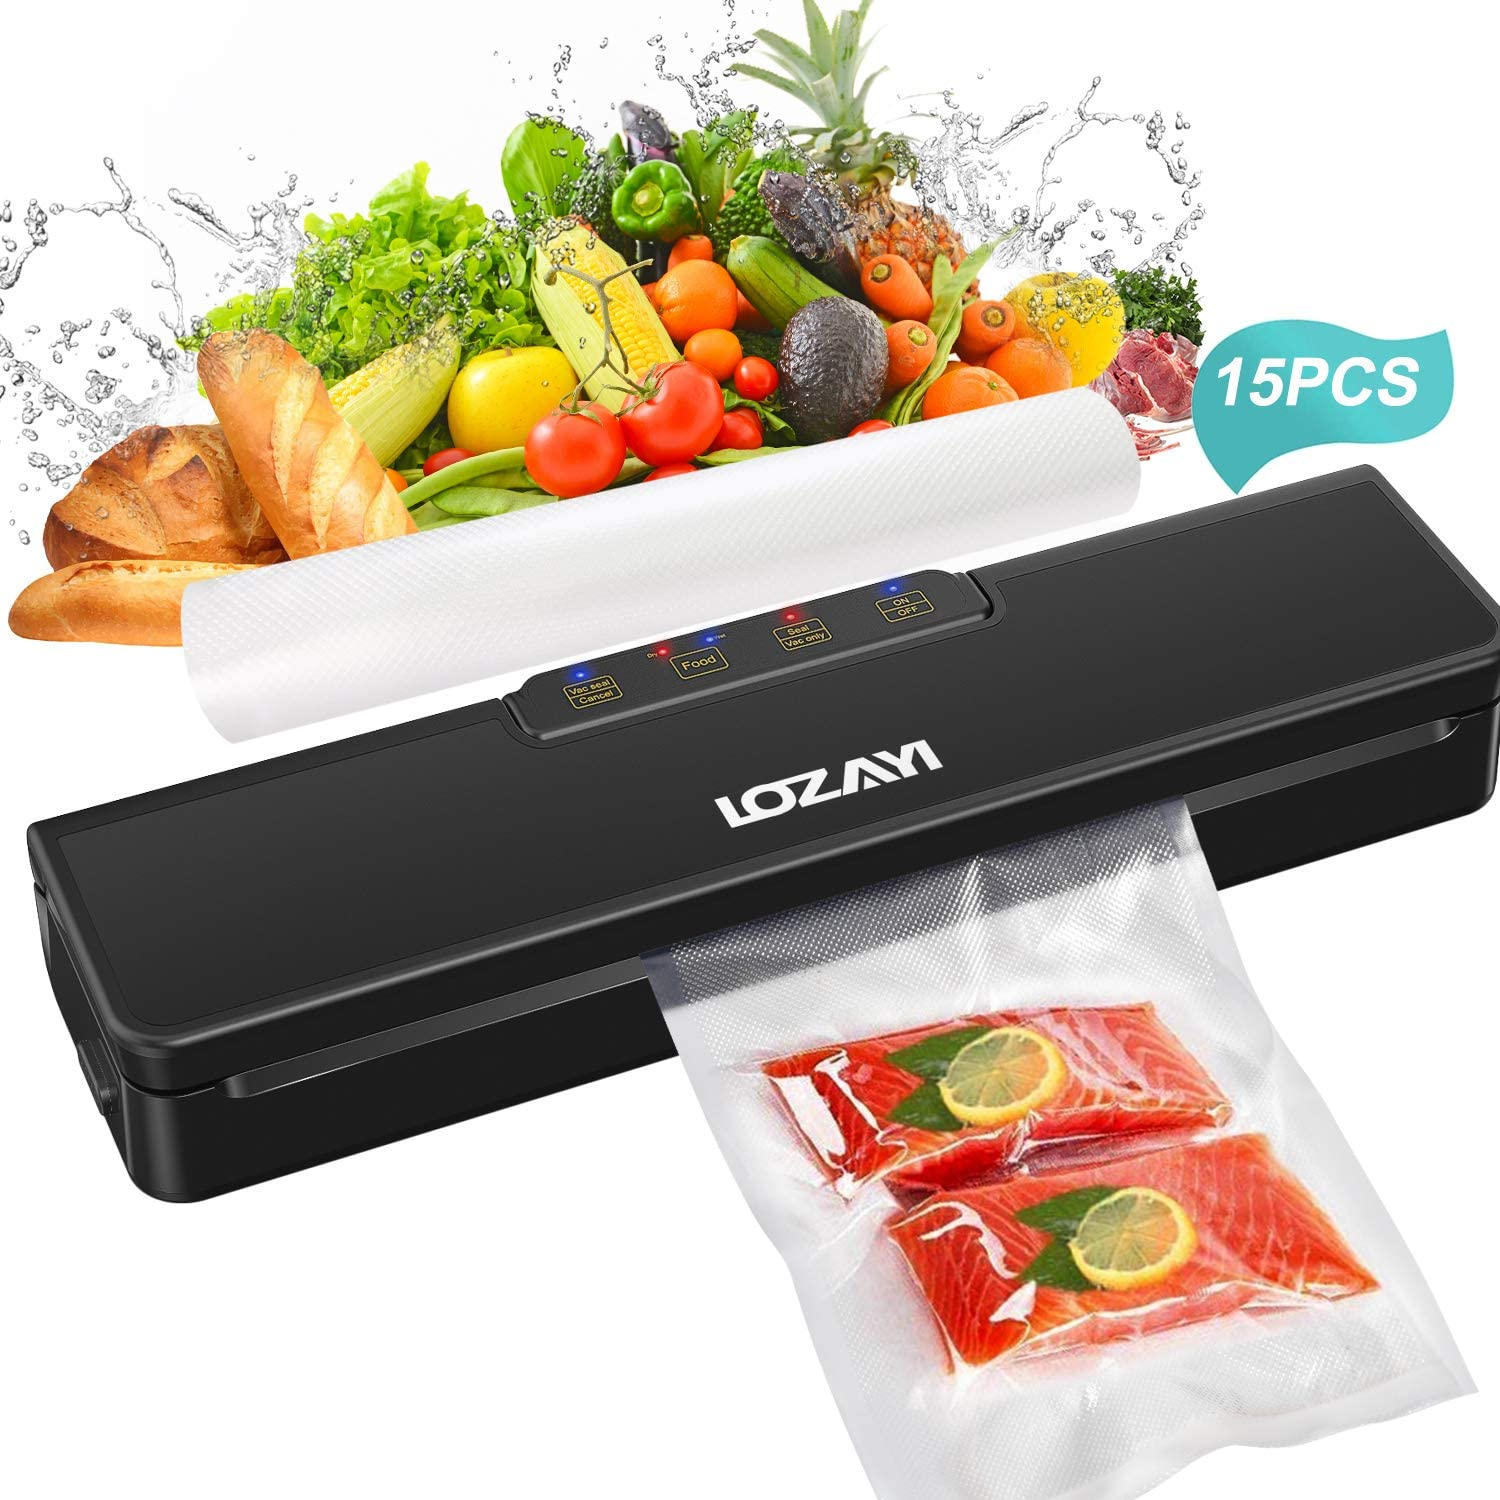 Vacuum Sealer Machine, LOZAYI Automatic Food Sealer for Food Savers/Starter Kit|Led Indicator Lights|Easy to Clean|Dry & Moist Food Modes| Compact Design-15 Pack Bags(Black)